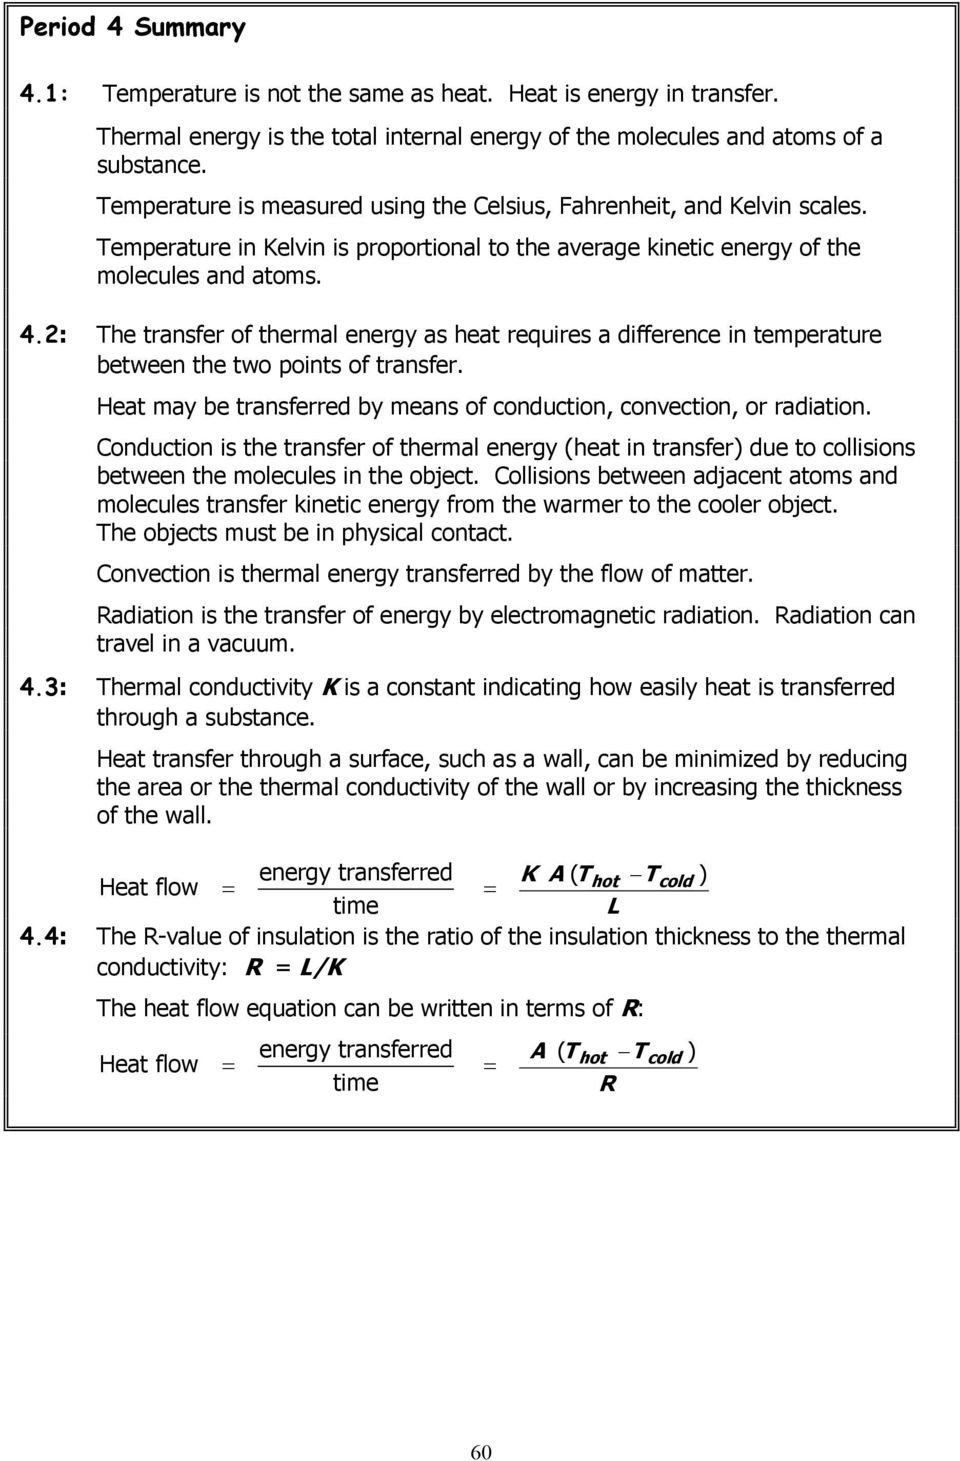 2: The transfer of thermal energy as heat requires a difference in temperature between the two points of transfer. Heat may be transferred by means of conduction, convection, or radiation.